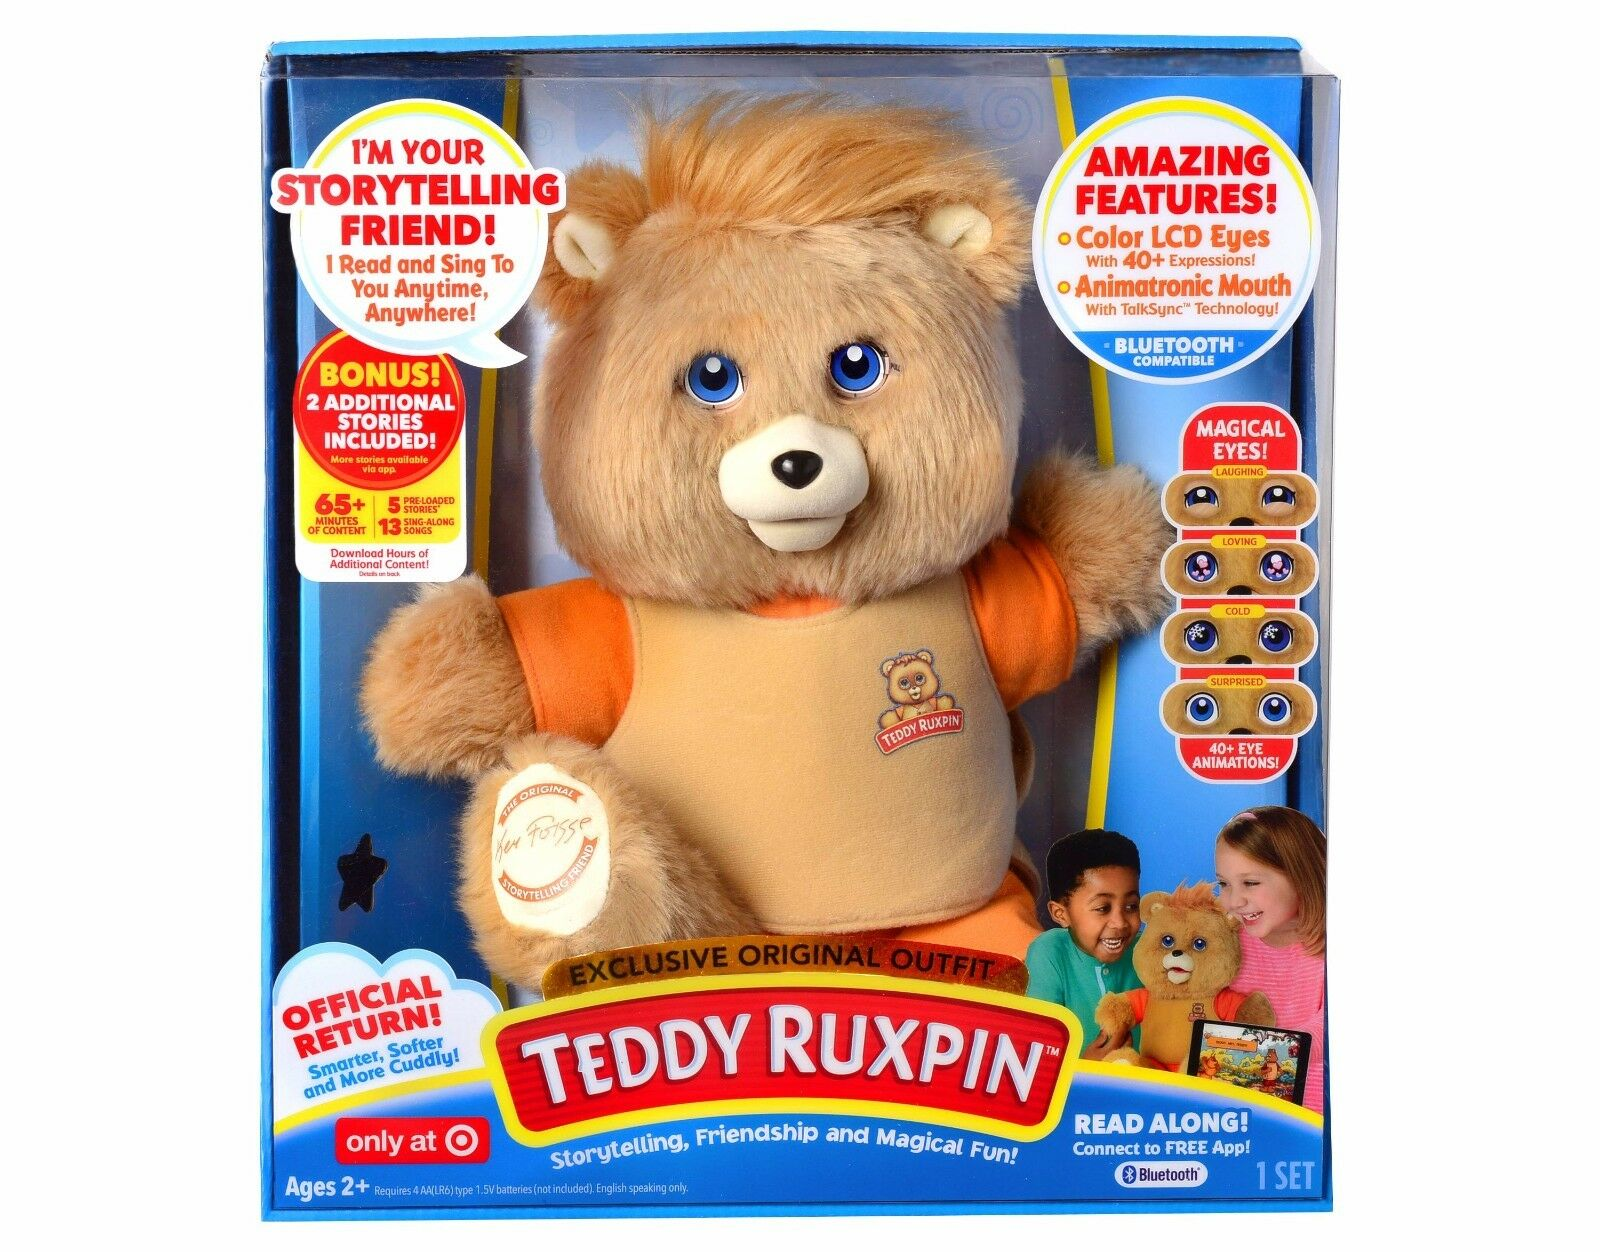 Teddy Ruxpin Bear 2017 Storytelling Original Outfit Target Exclusive Nuovo in Hand